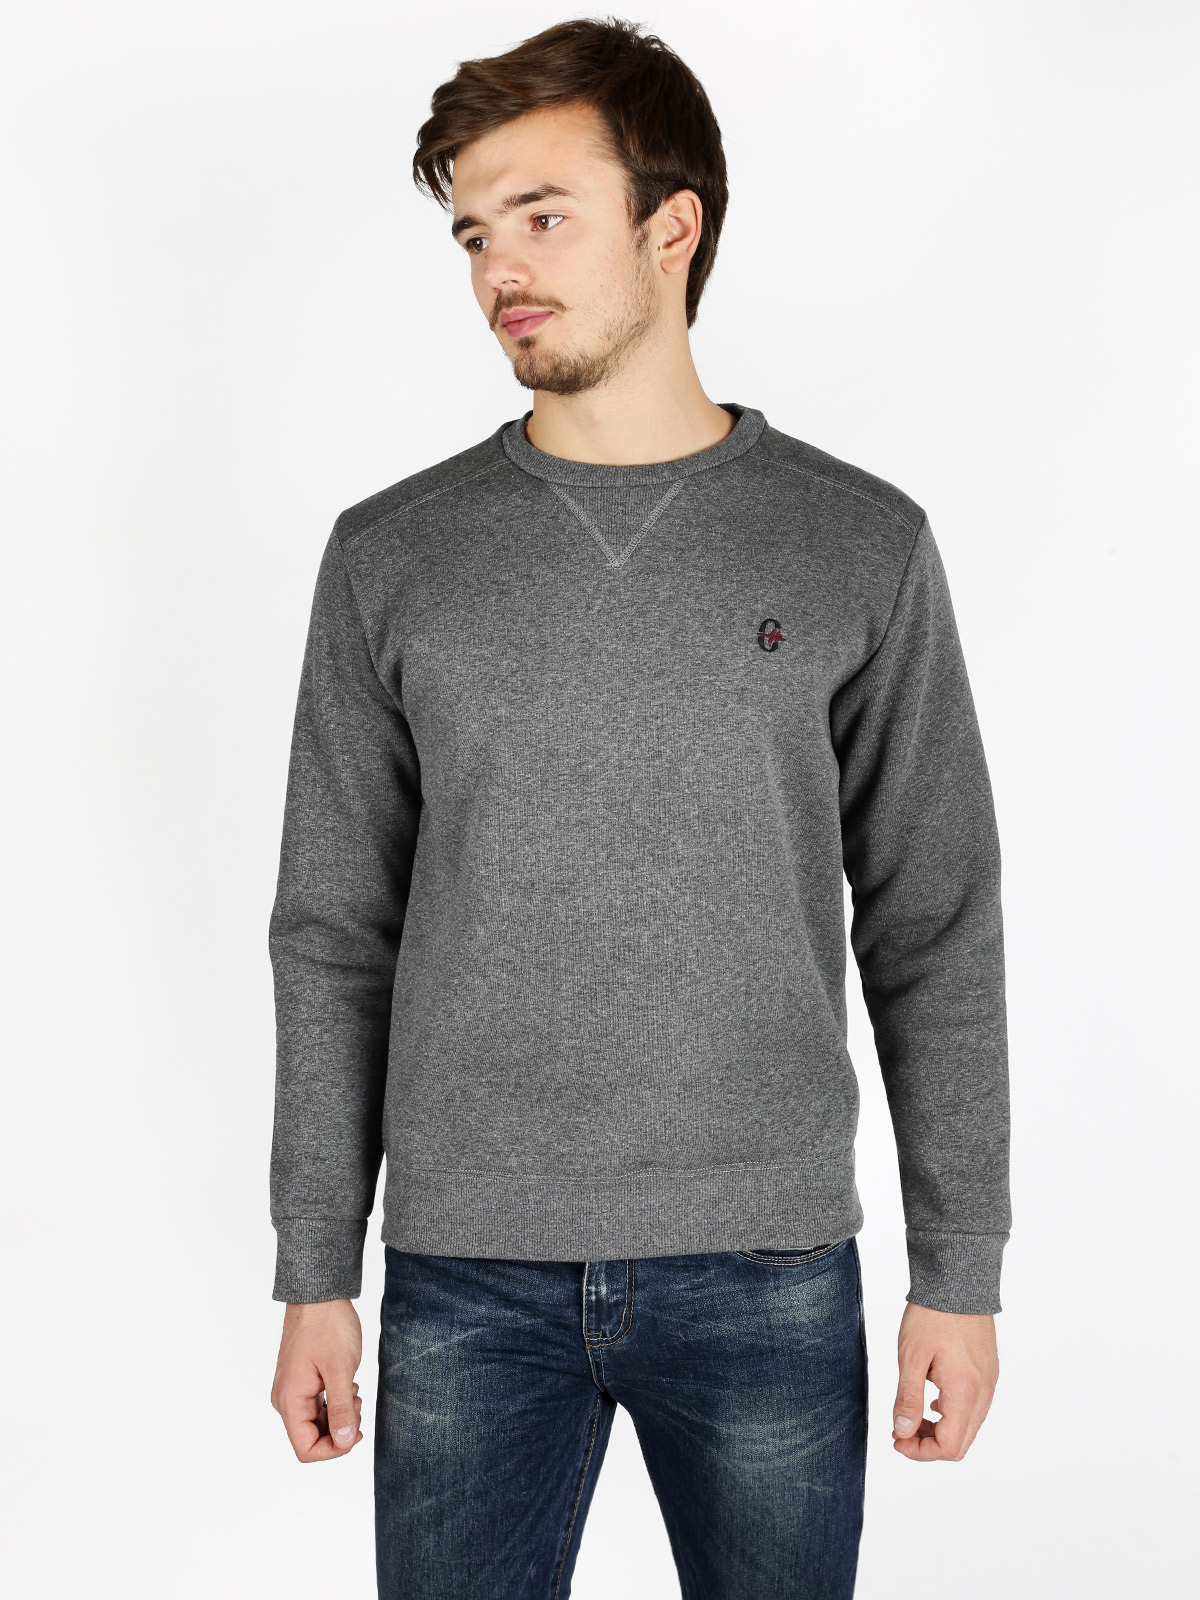 Heavy Sweatshirt Round Neck